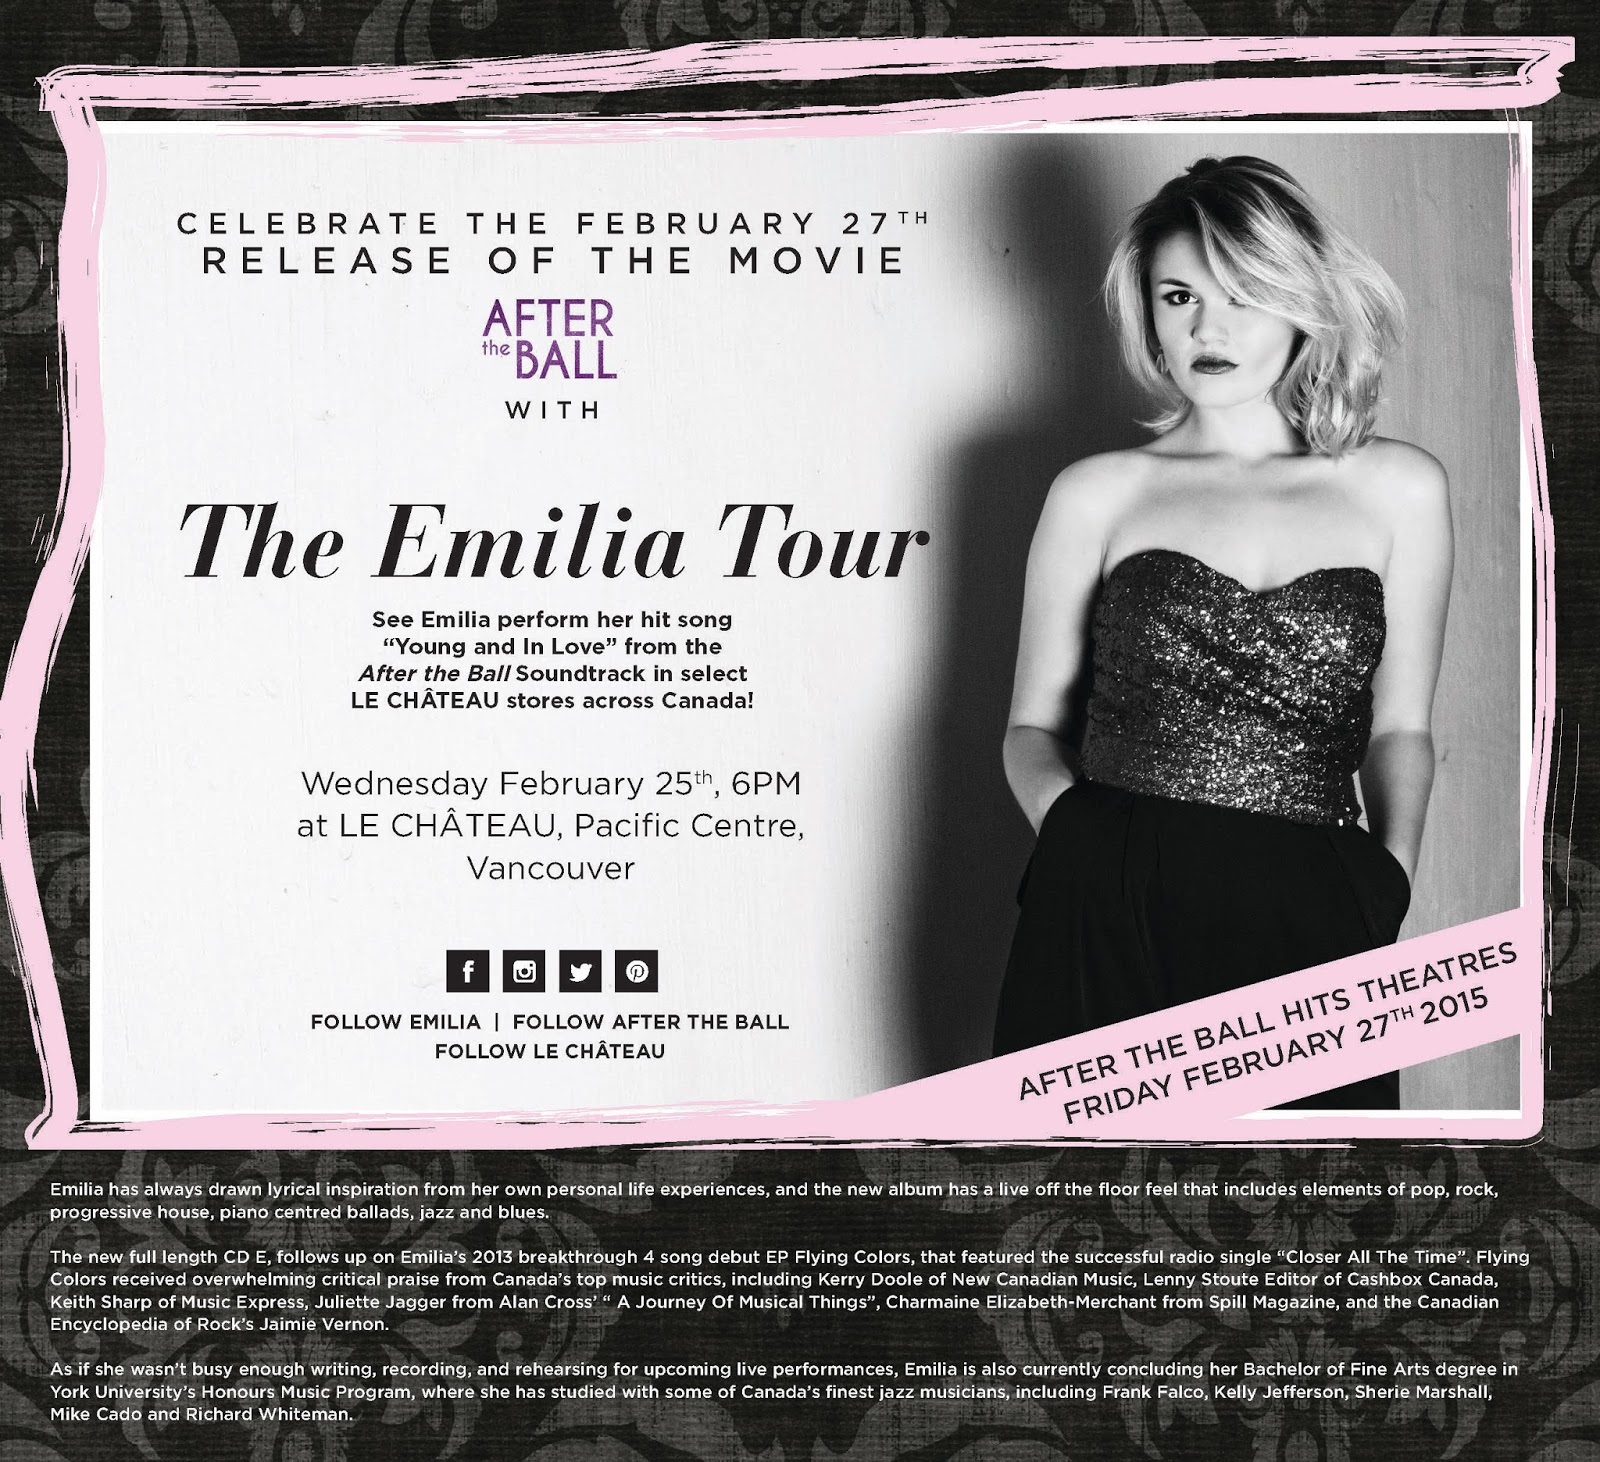 The Emilia Tour Le Chateau event Vancouver